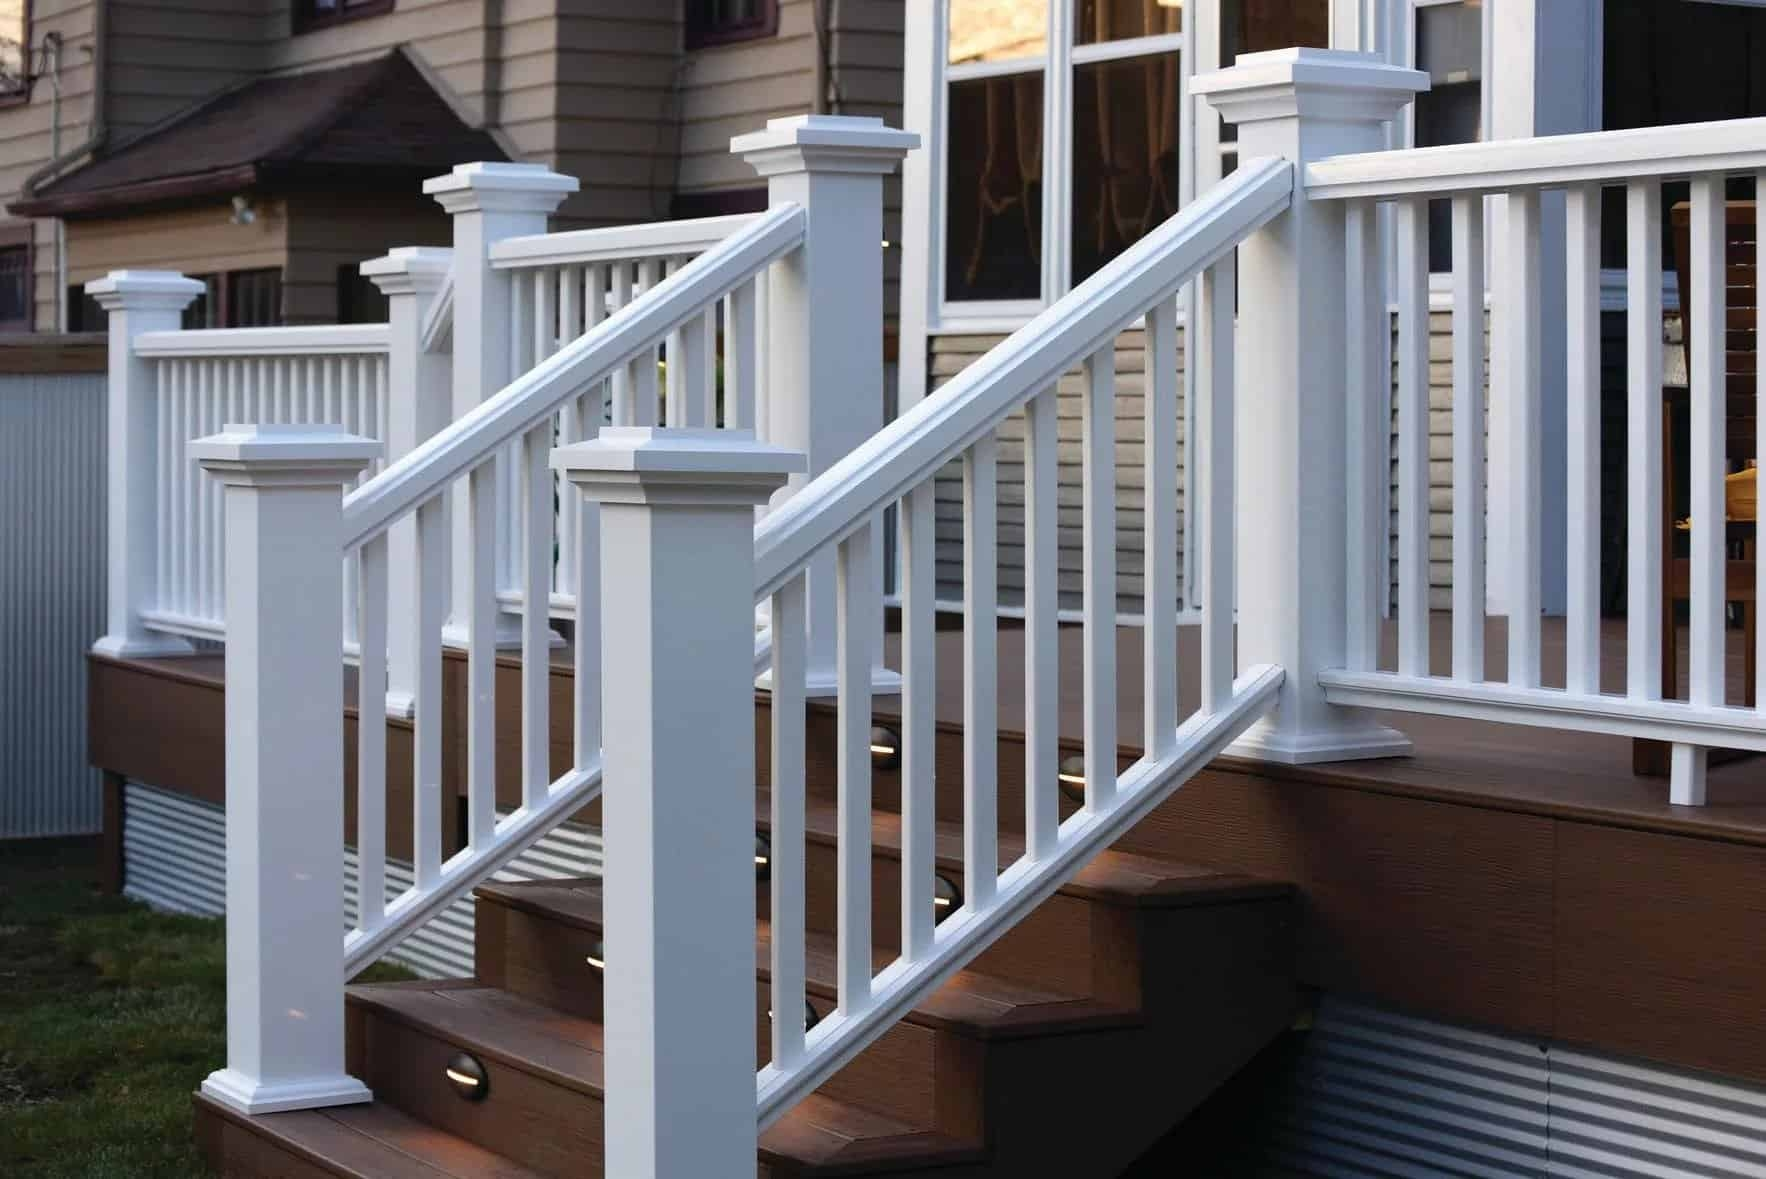 How To Install Timbertech Deck Railing Timbertech | Outside Stair Railing Installation | 3 Step | Rail | Painted Porch | Sunroom | Door Offset